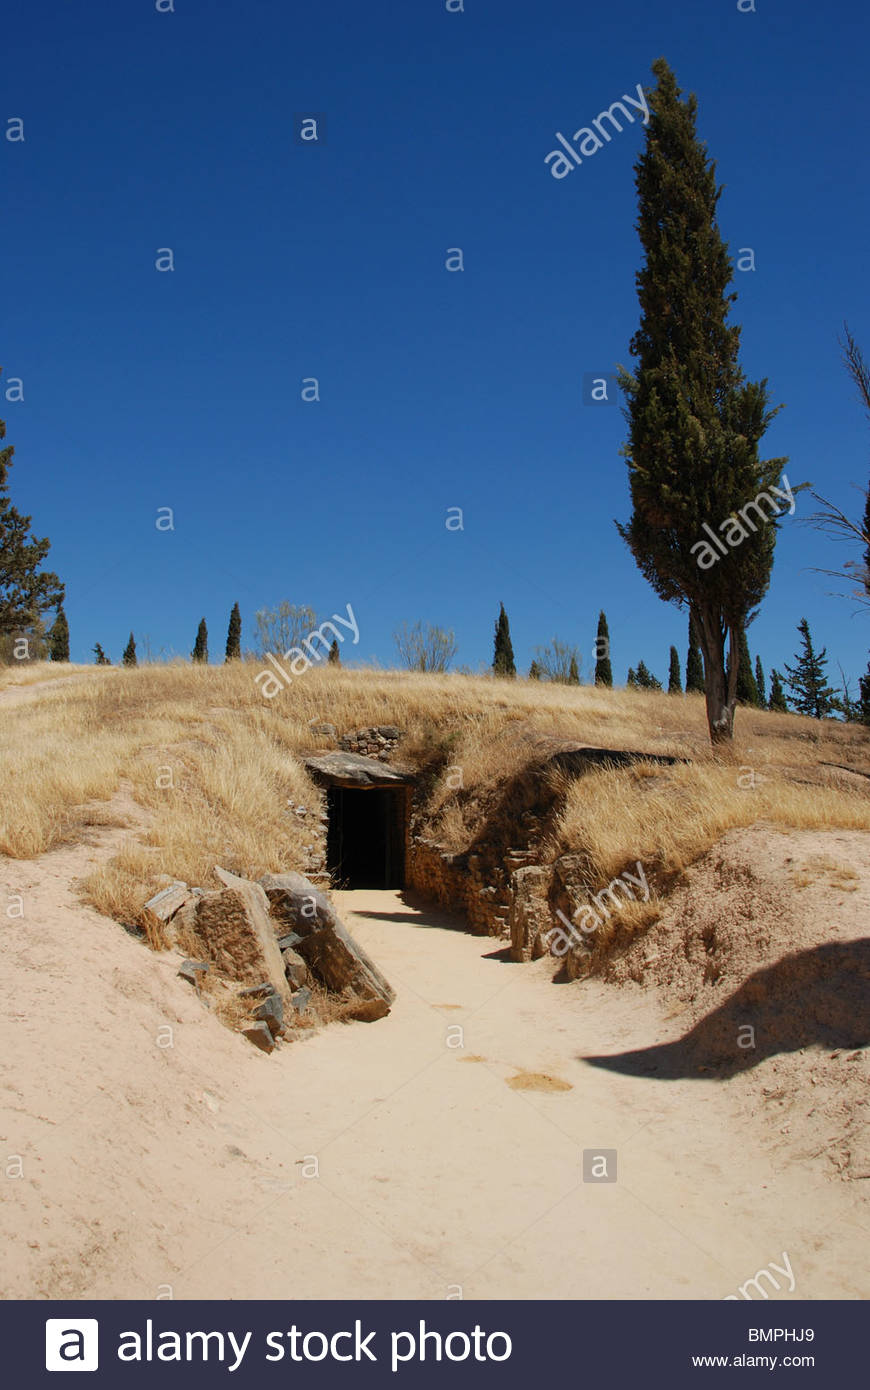 Entrance to the Dolmen de Romeral, The Dolmens, Antequera, Malaga Province, Andalucia, Spain, Western Europe. - Stock Image